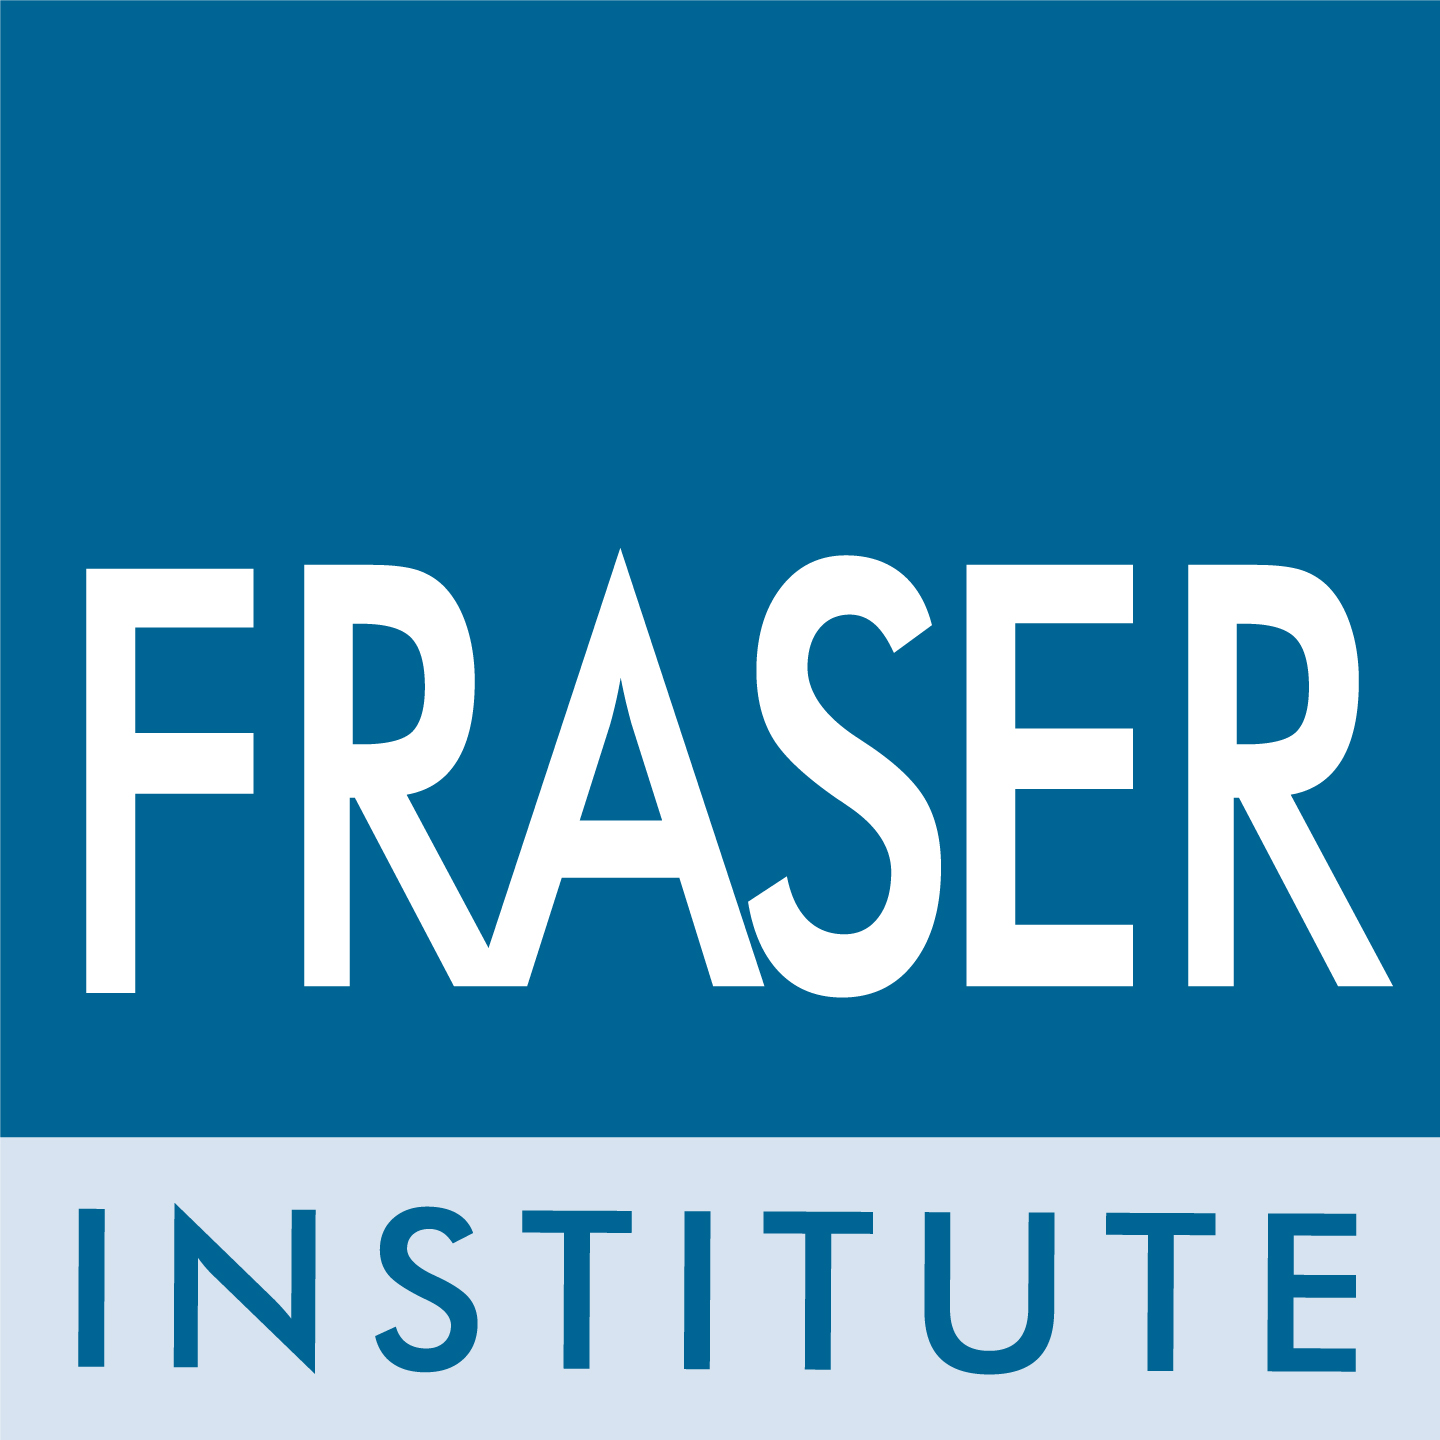 Fraser Institute News Release: Annual health-care costs for typical Canadian family may eclipse $14,000 this year